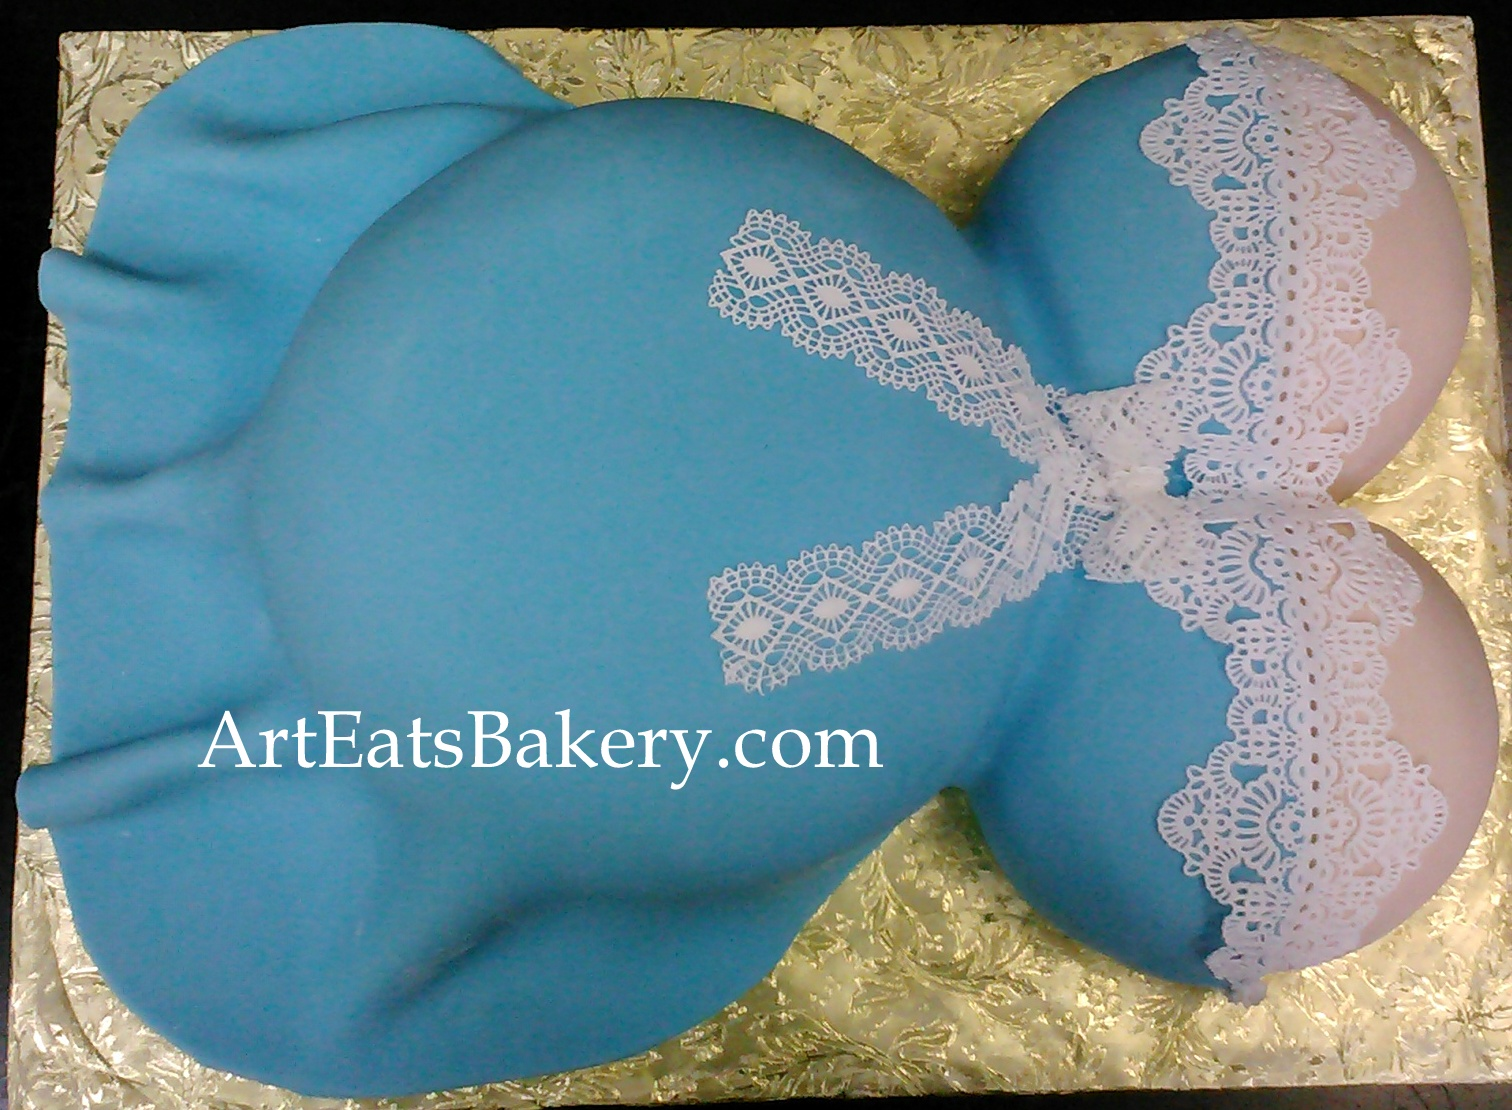 Blue and white boy baby bump shower cake with edible lace and bow design.jpg